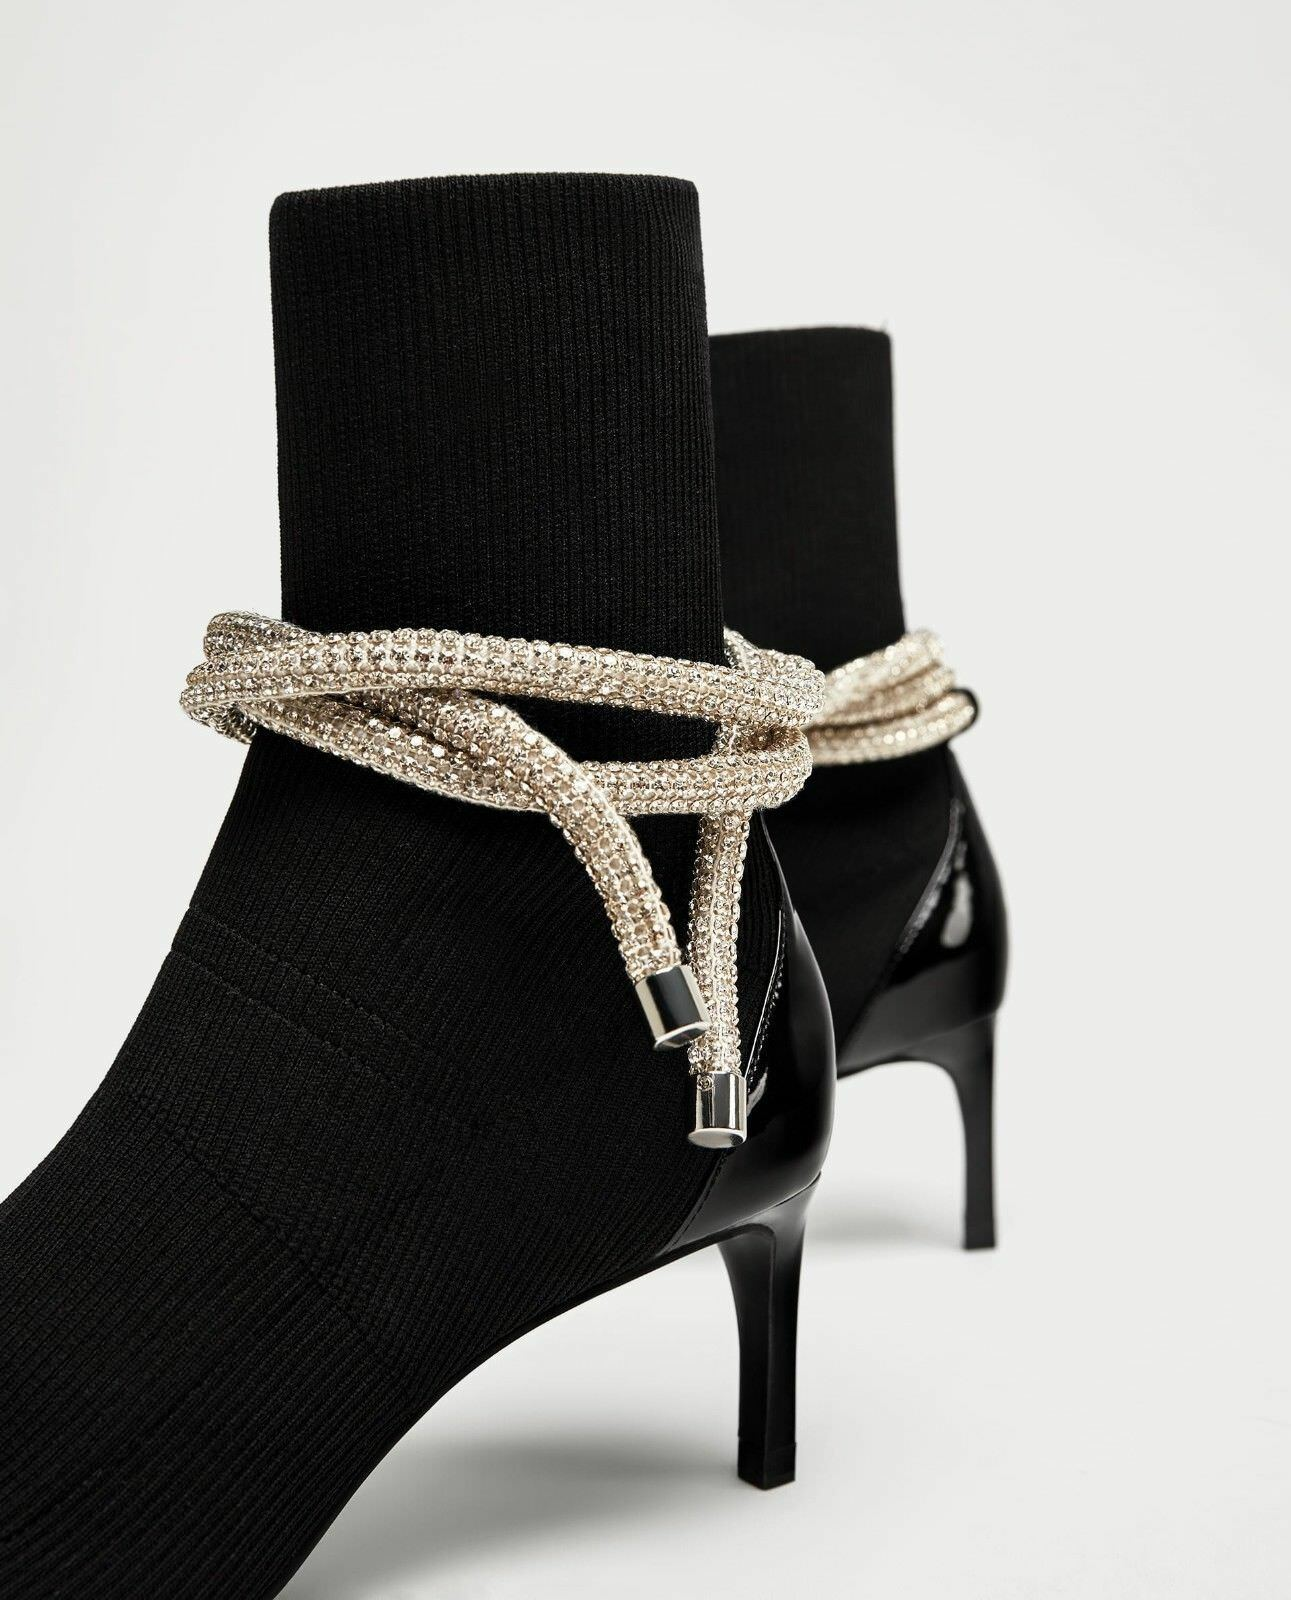 ZARA NEW AW17 HIGH HEEL HEEL HEEL ANKLE BOOTS WITH OPENING AND CORD REF.7105 201 e24647